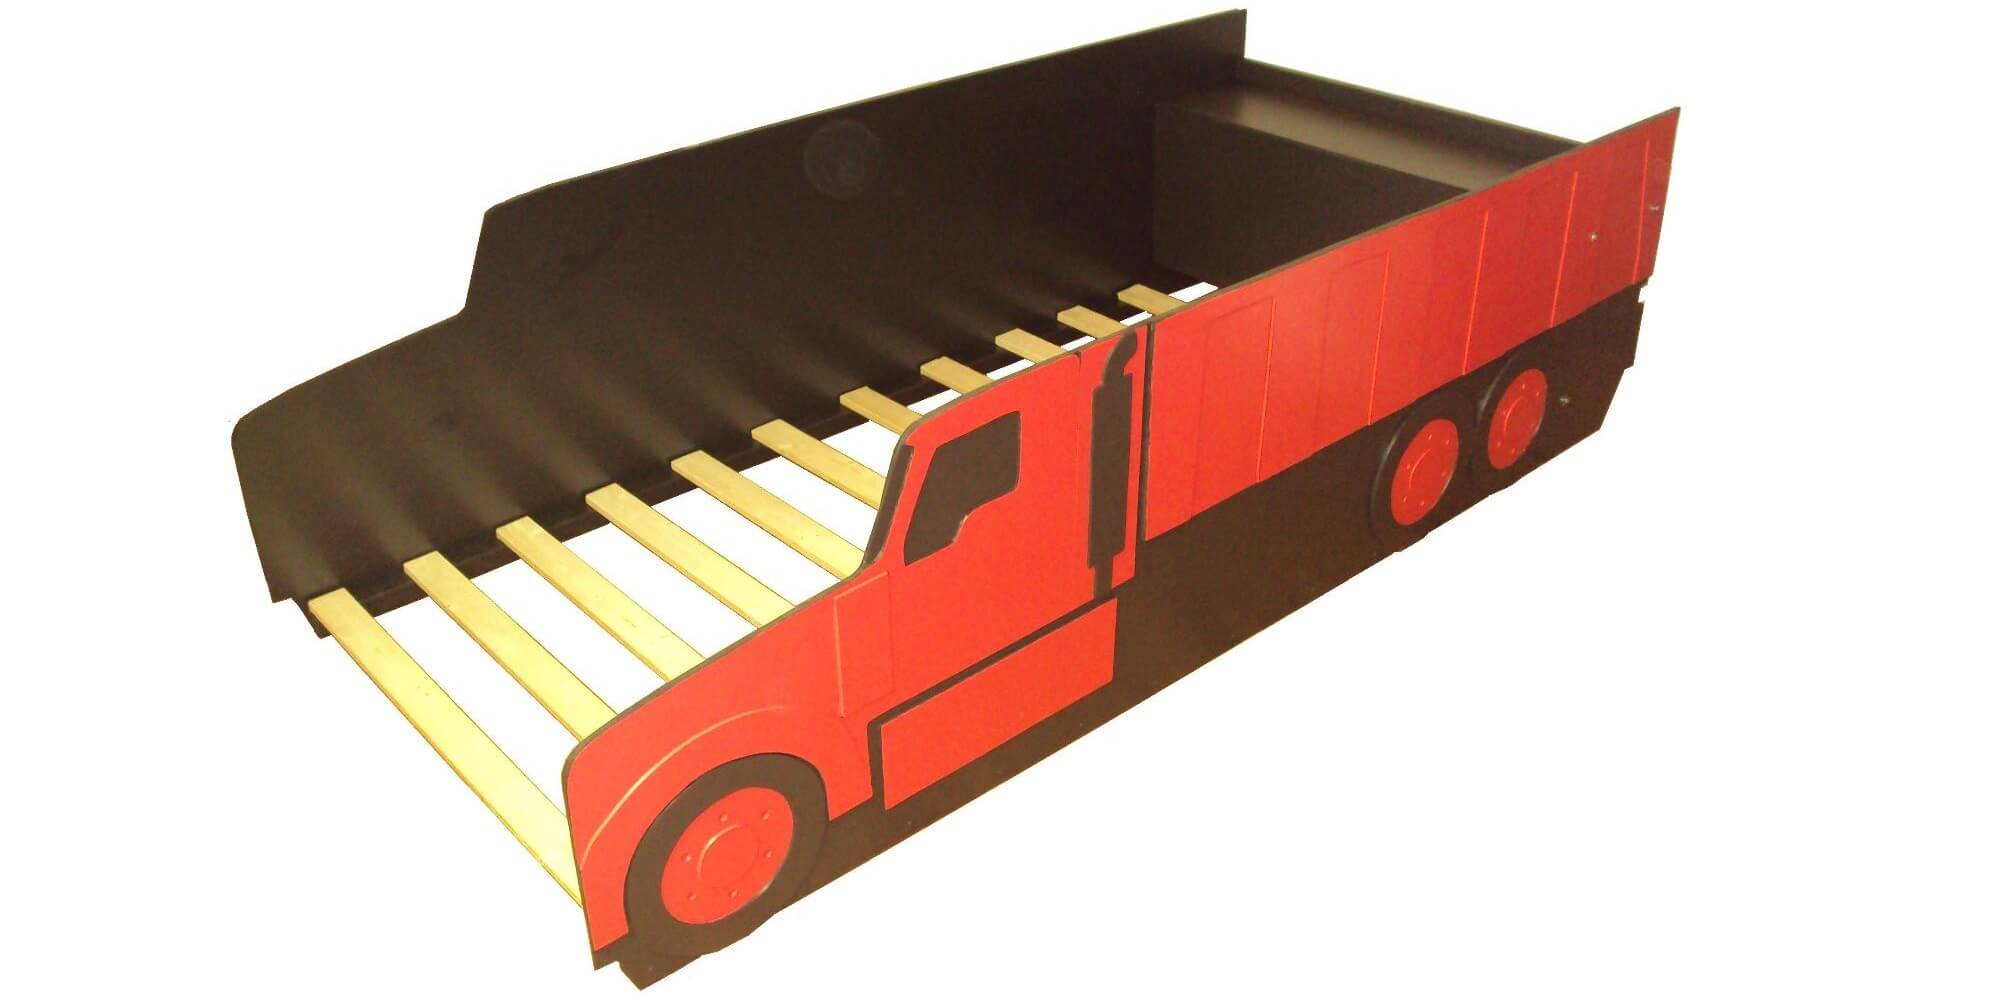 Dump truck bed in red